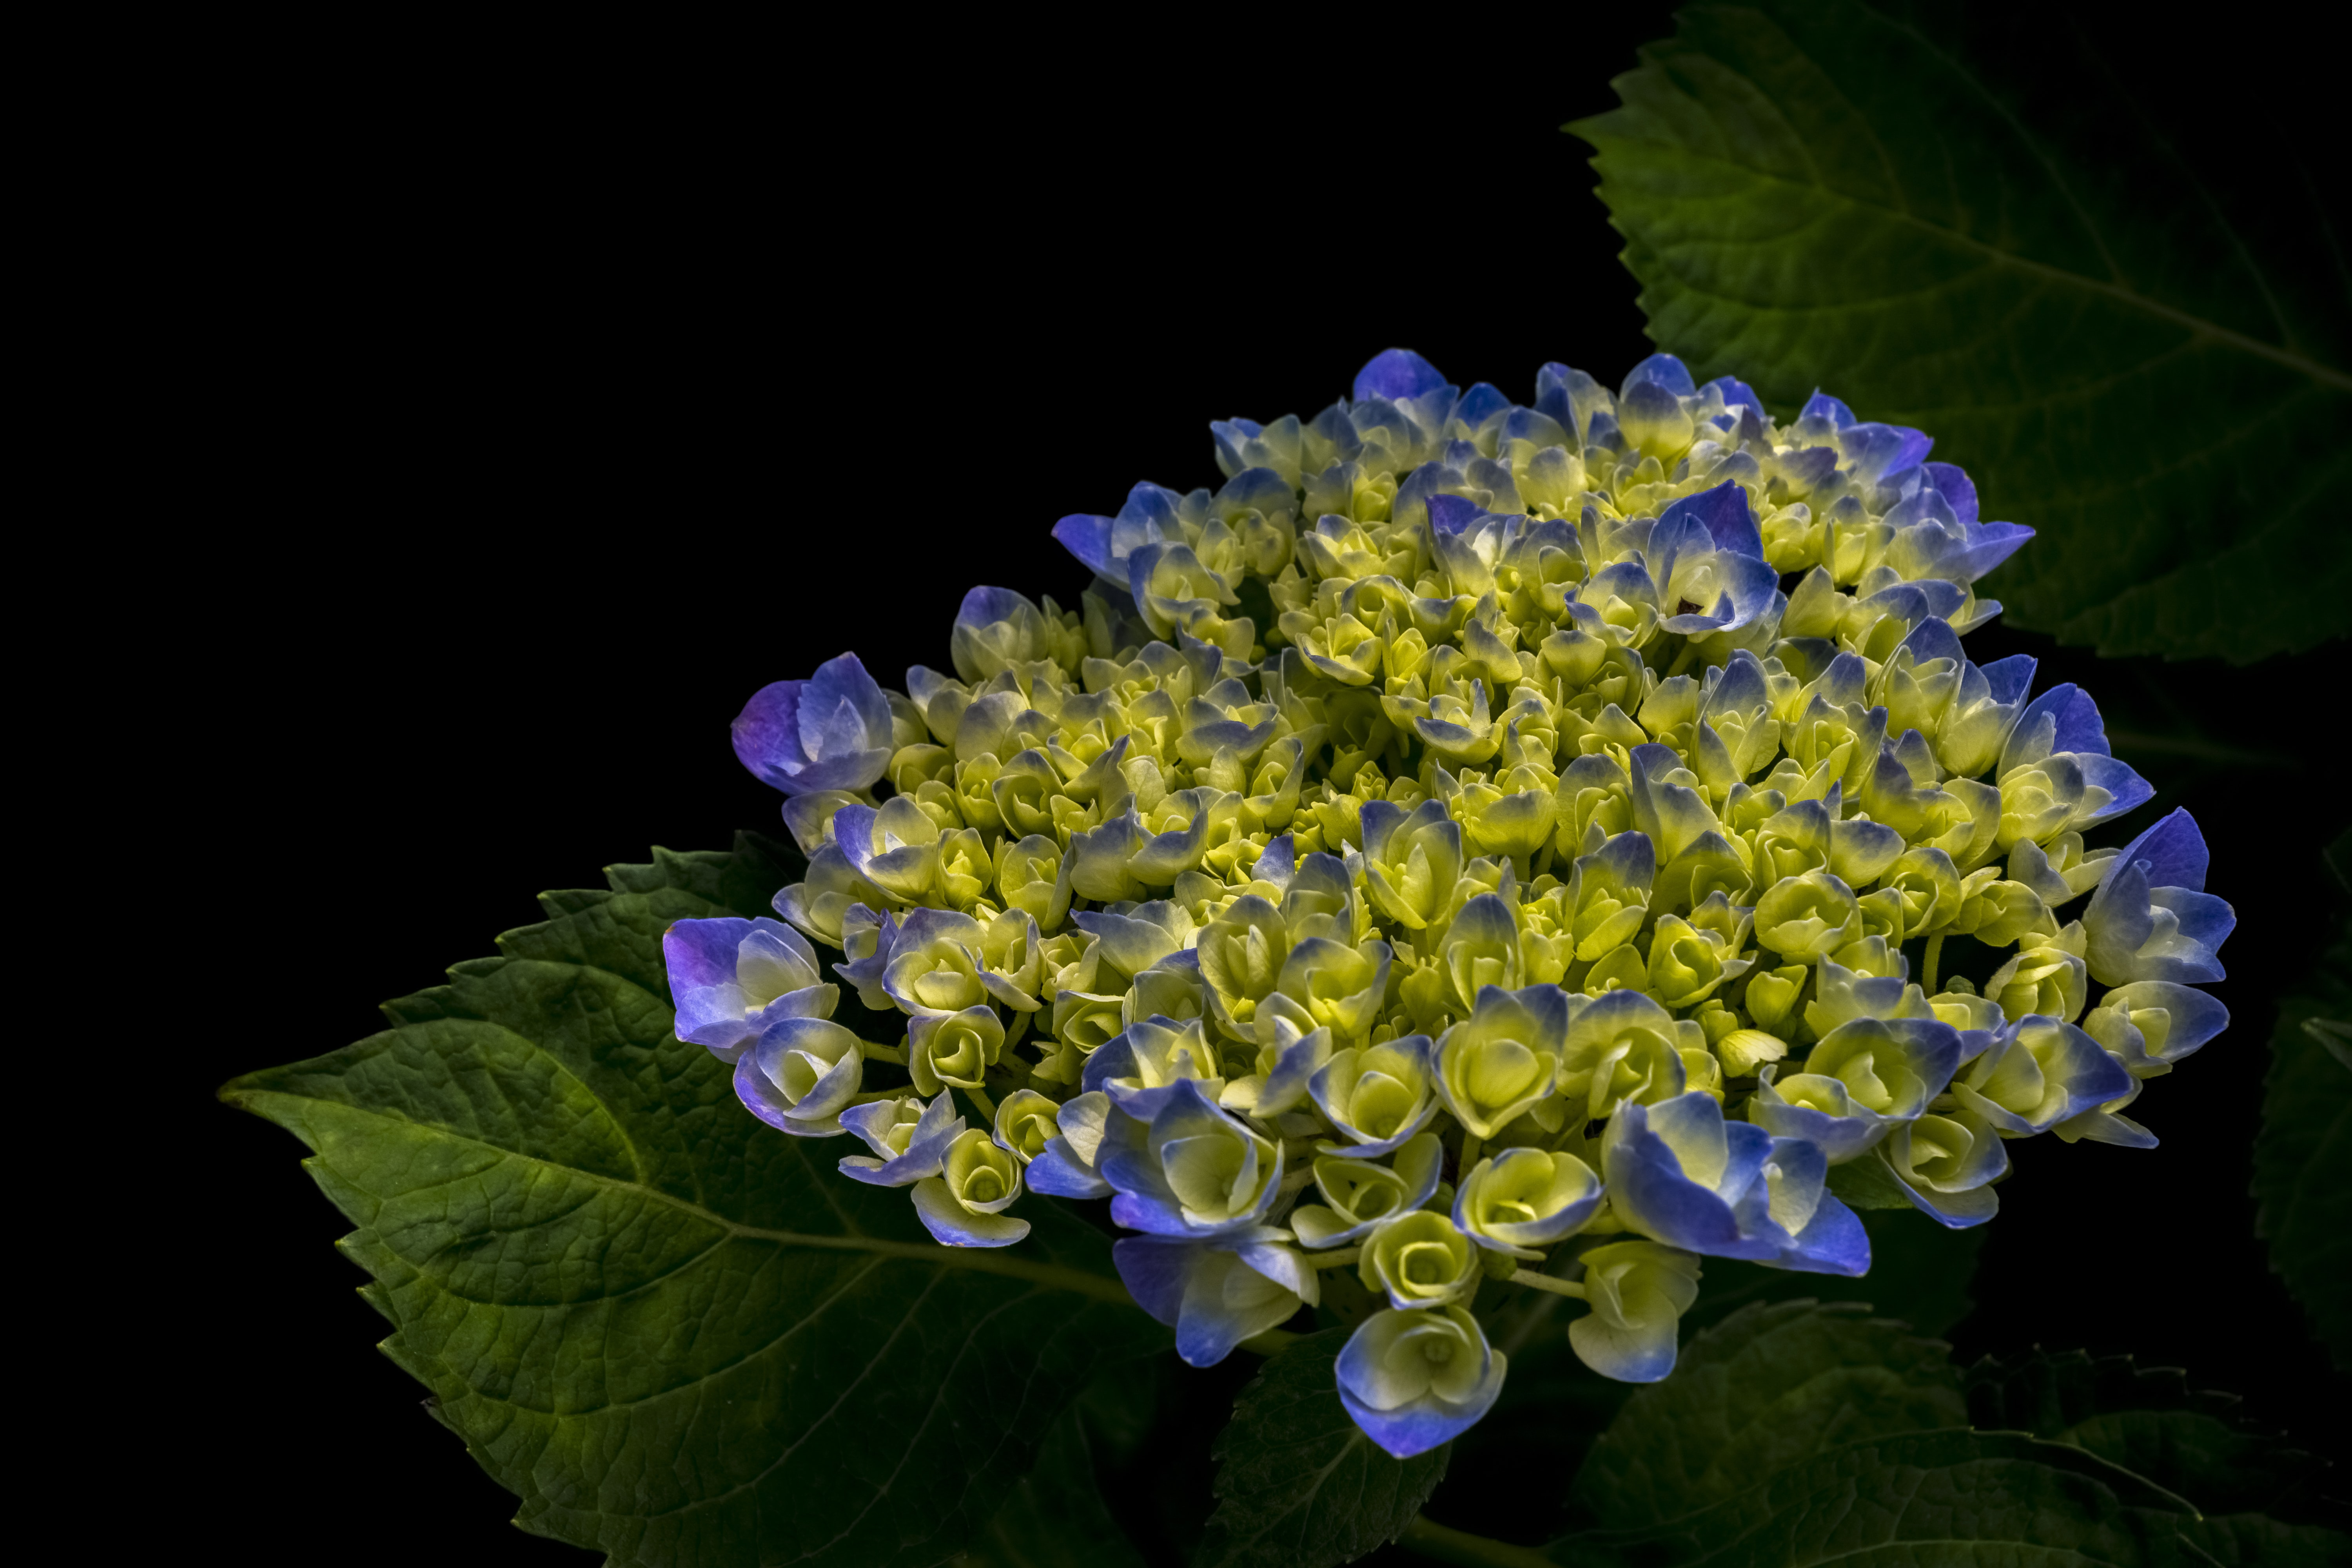 Beautiful purple hydrangea flower blossoms for the camera